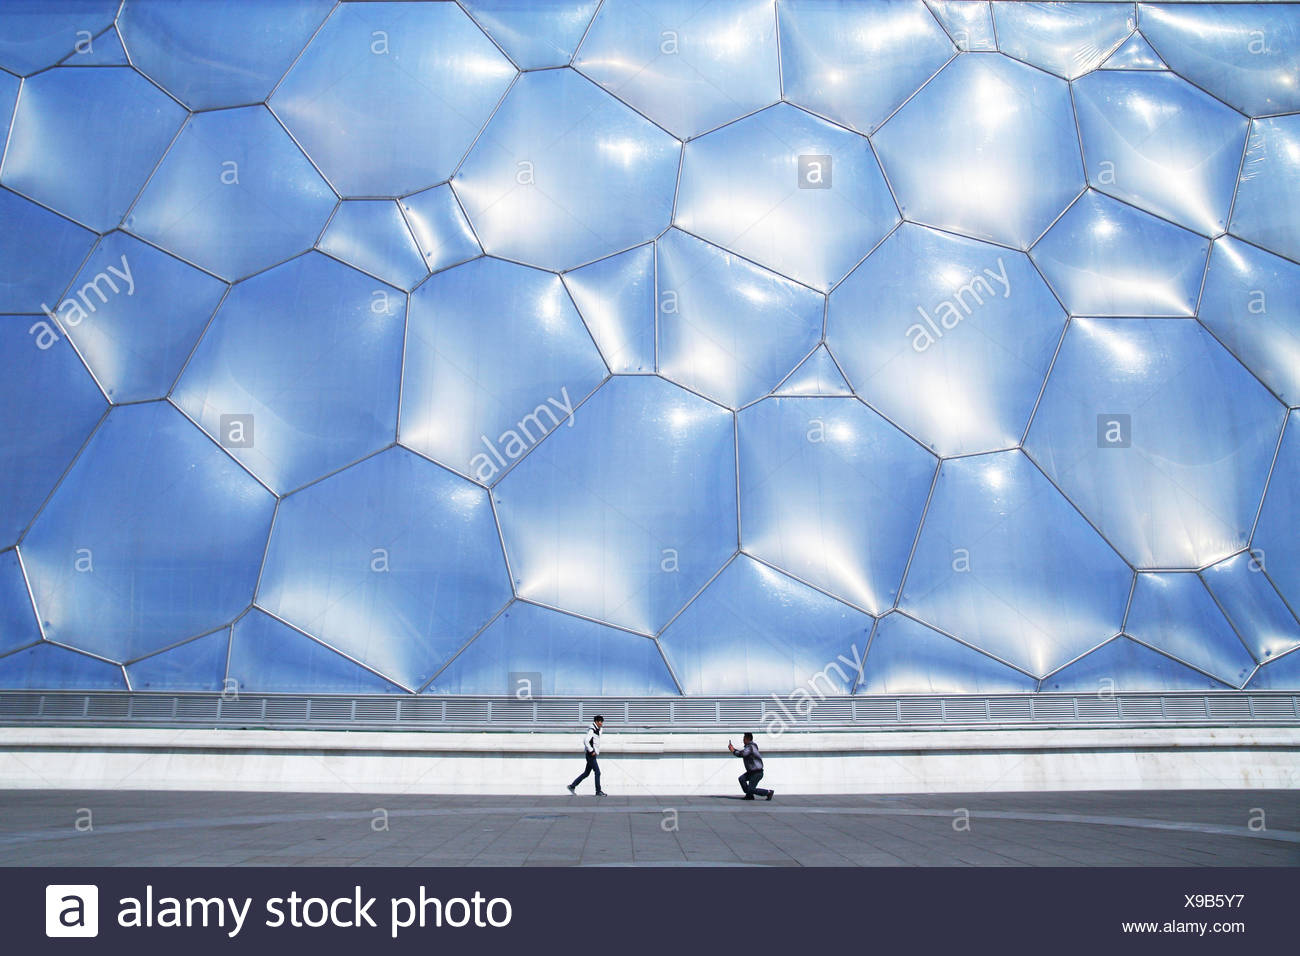 The National Aquatics Center, or Water Cube, in Beijing. - Stock Image